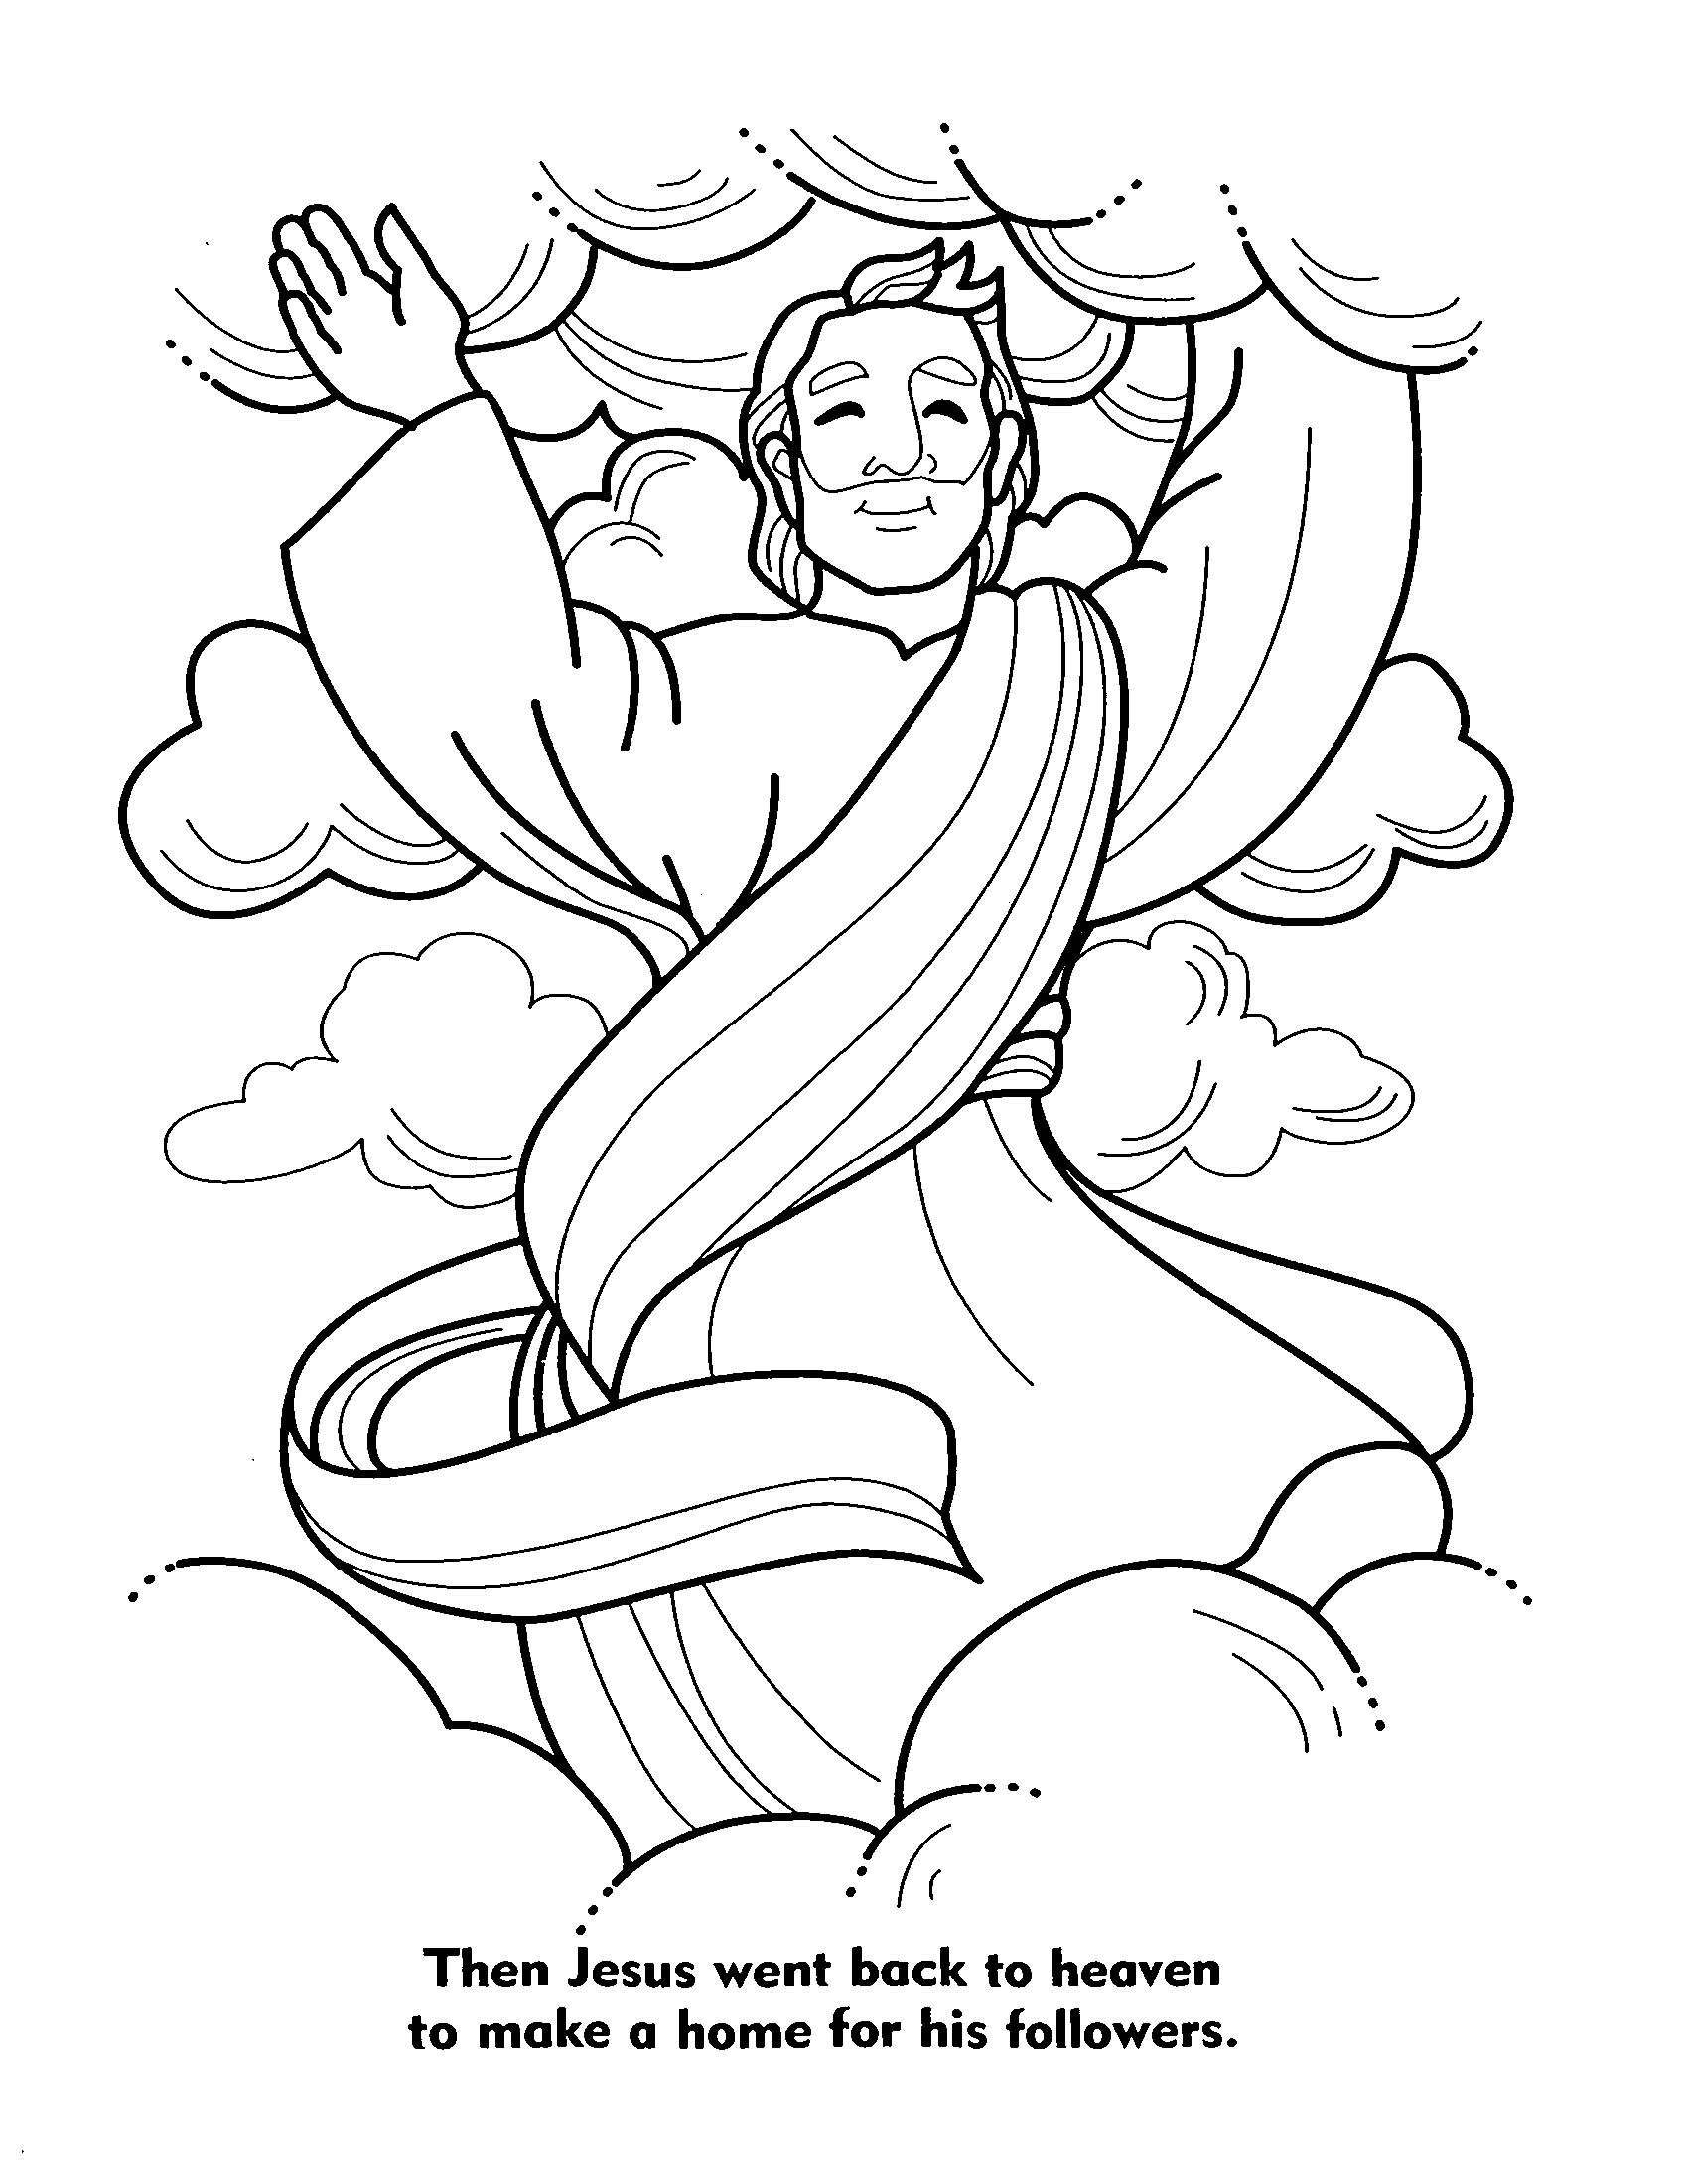 coloring pages for kids jesus glorious jesus coloring bible coloring free printable pages jesus for kids coloring